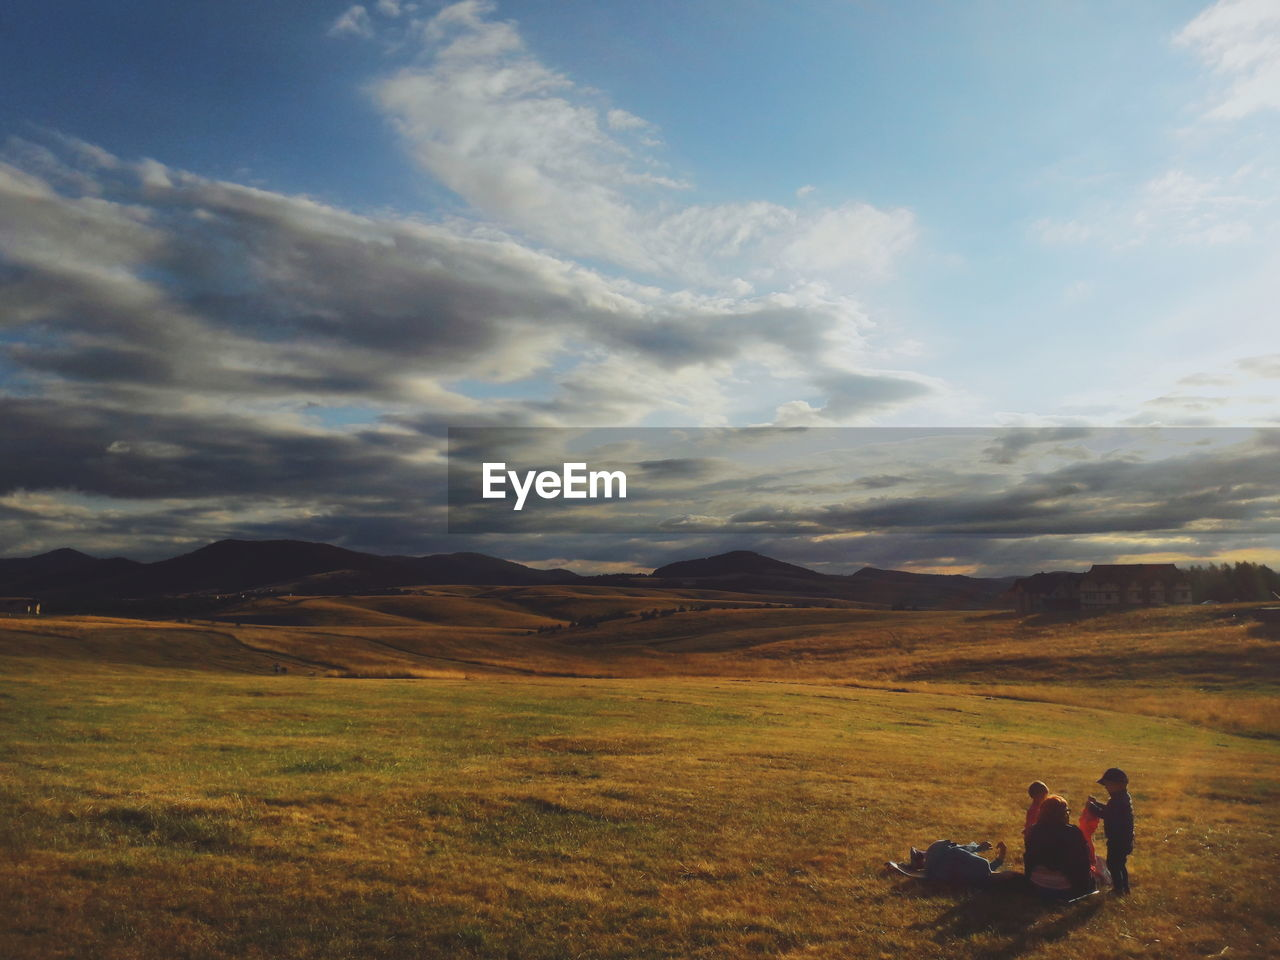 sky, cloud - sky, two people, scenics - nature, landscape, beauty in nature, environment, men, tranquil scene, tranquility, real people, field, mountain, land, nature, leisure activity, lifestyles, non-urban scene, people, togetherness, positive emotion, outdoors, couple - relationship